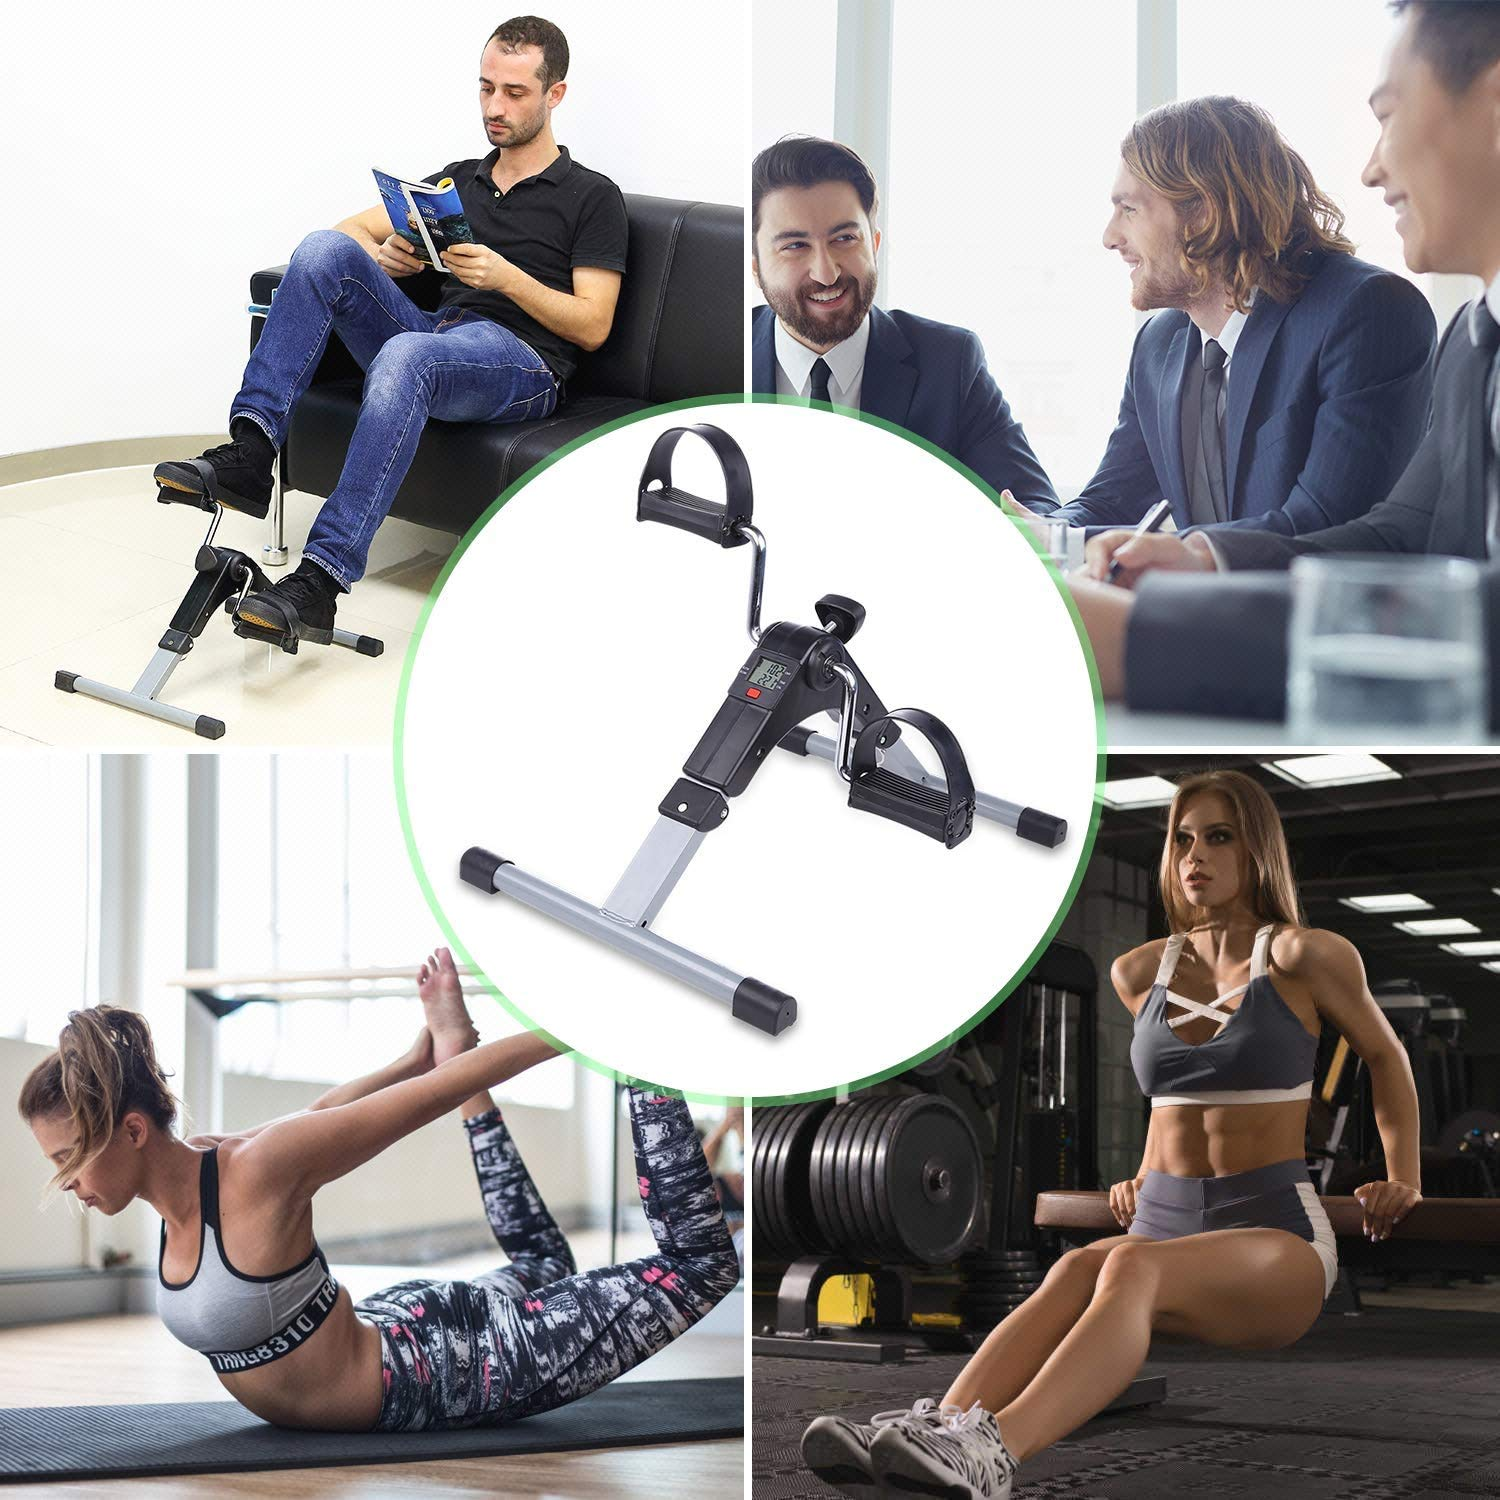 Jukkre Folding Mini Exercise Bike Portable Home Pedal Exerciser Gym Fitness Leg Arm Cardio Training Adjustable Resistance with LCD Display for Women and Men